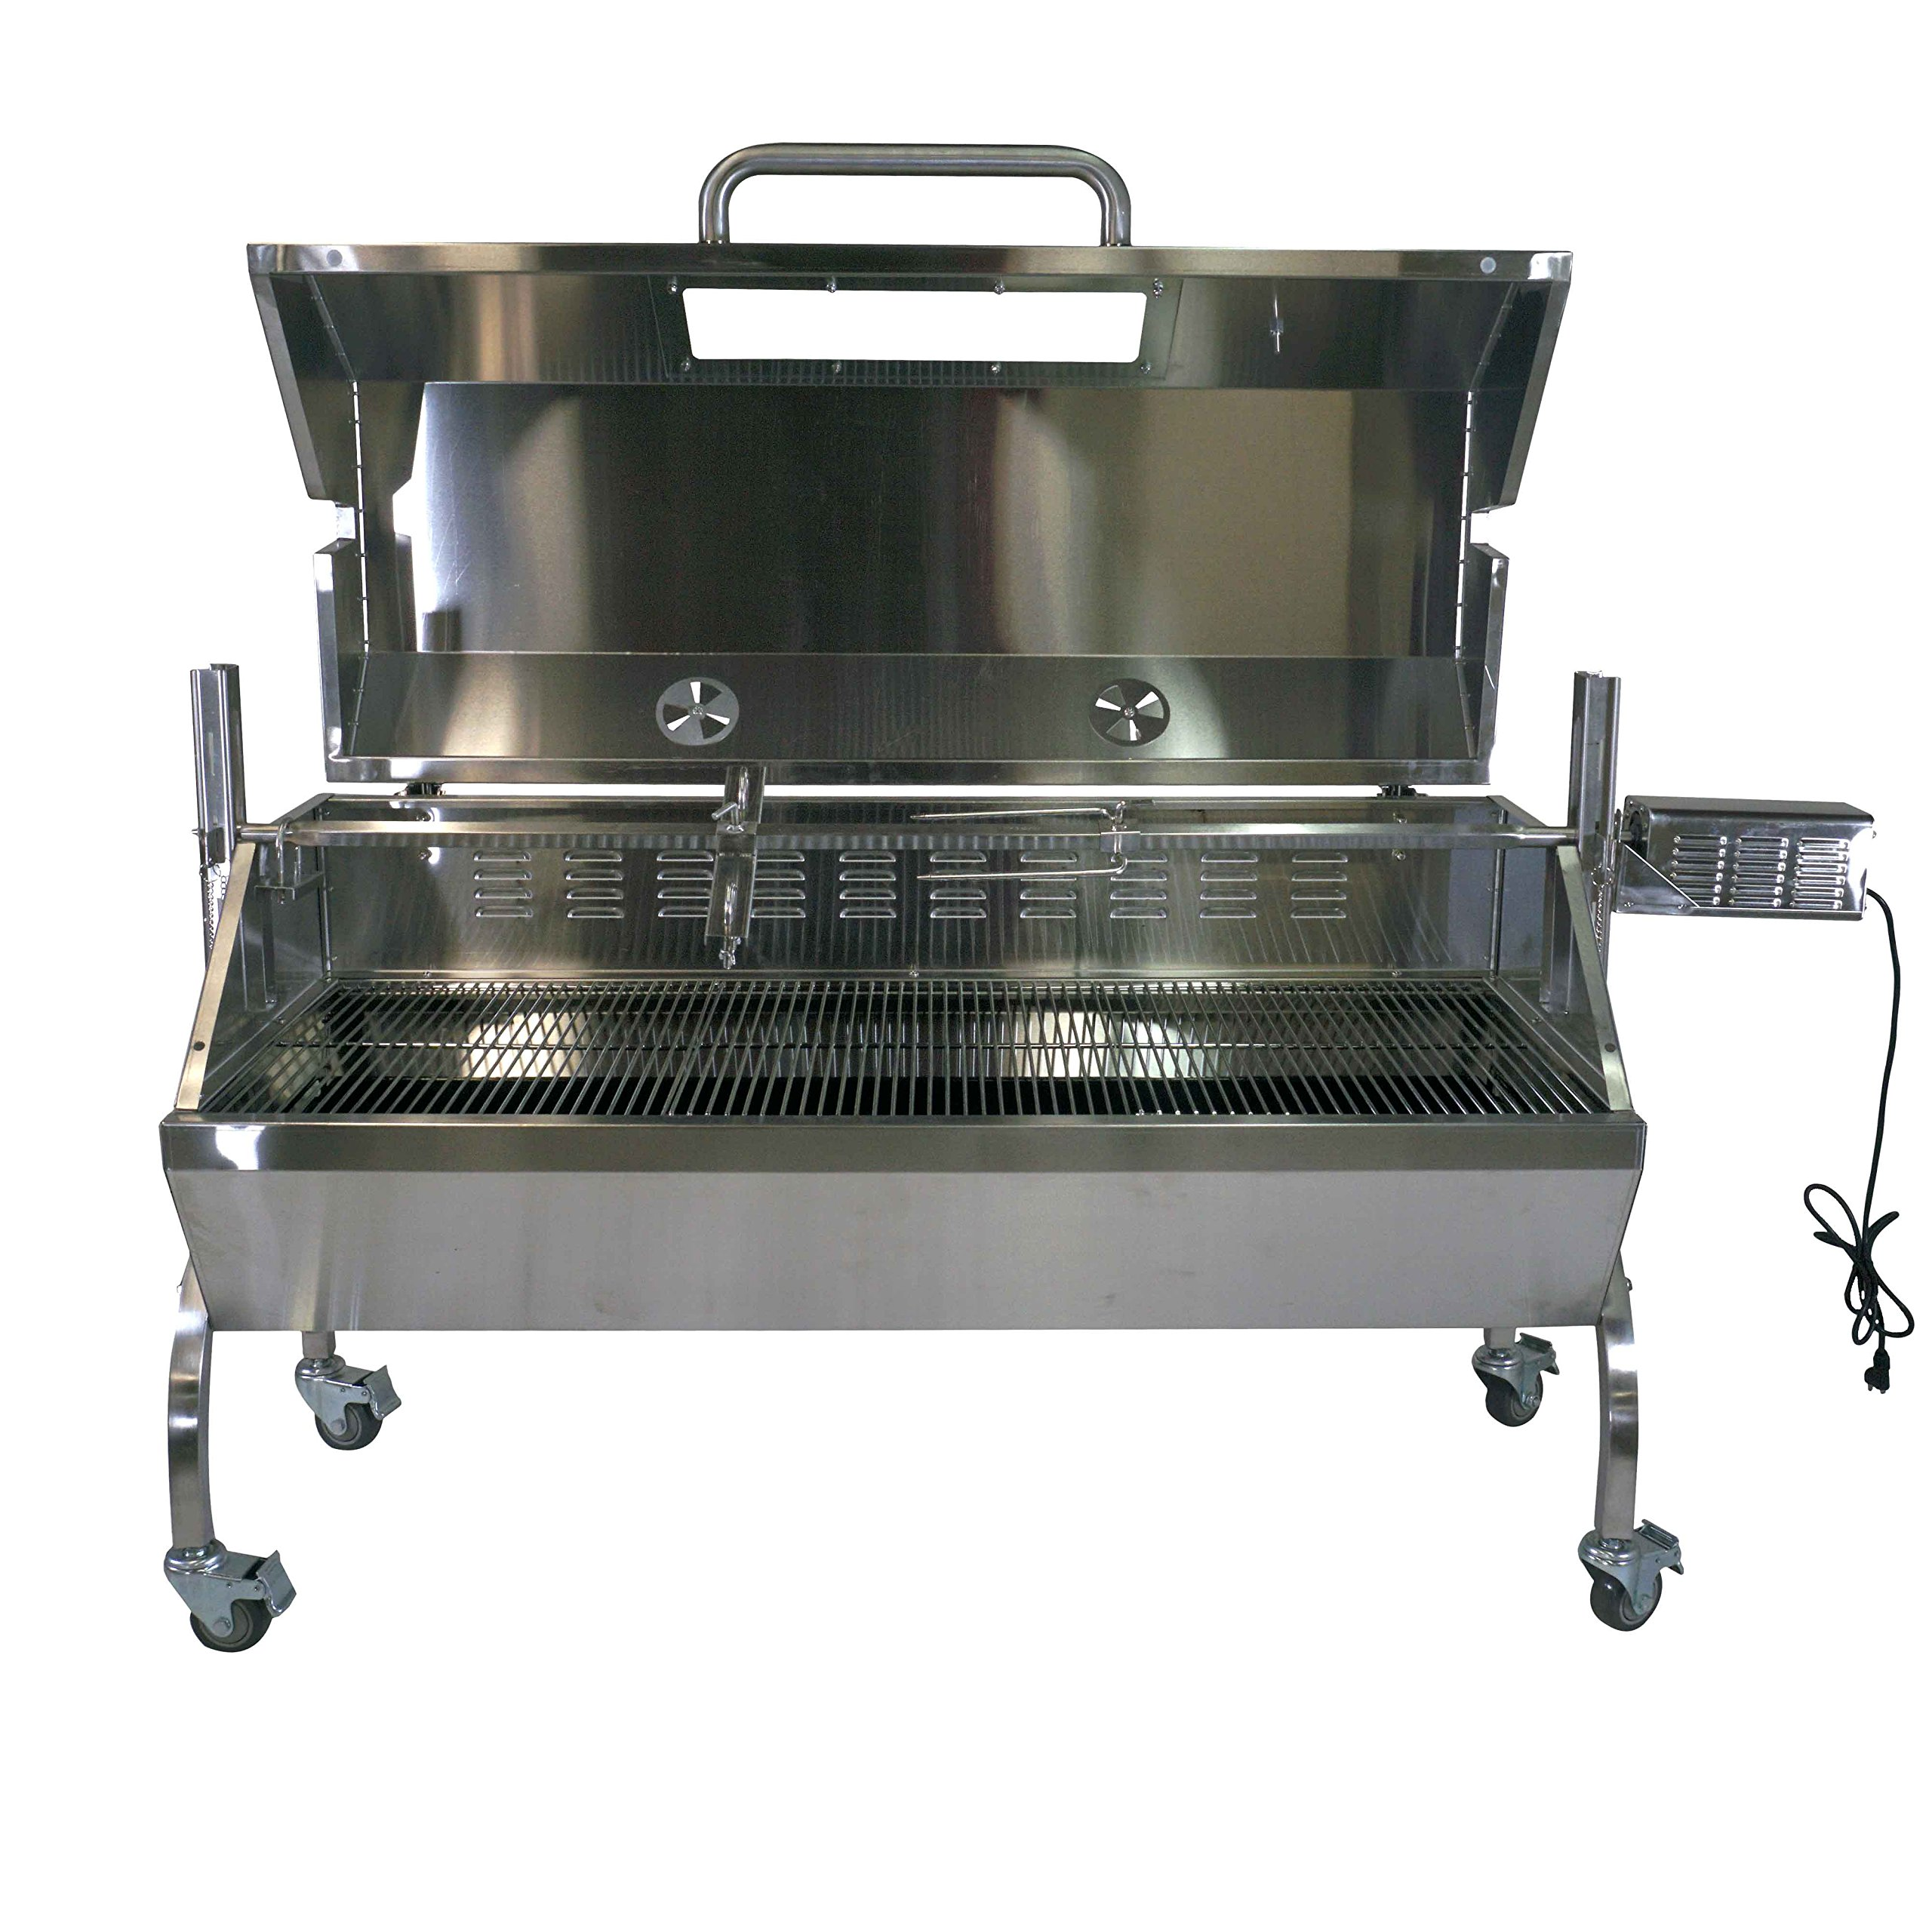 Titan Attachments BBQ Rotisserie Grill w/Roaster Spit and Glass Hood, 125 lbs.